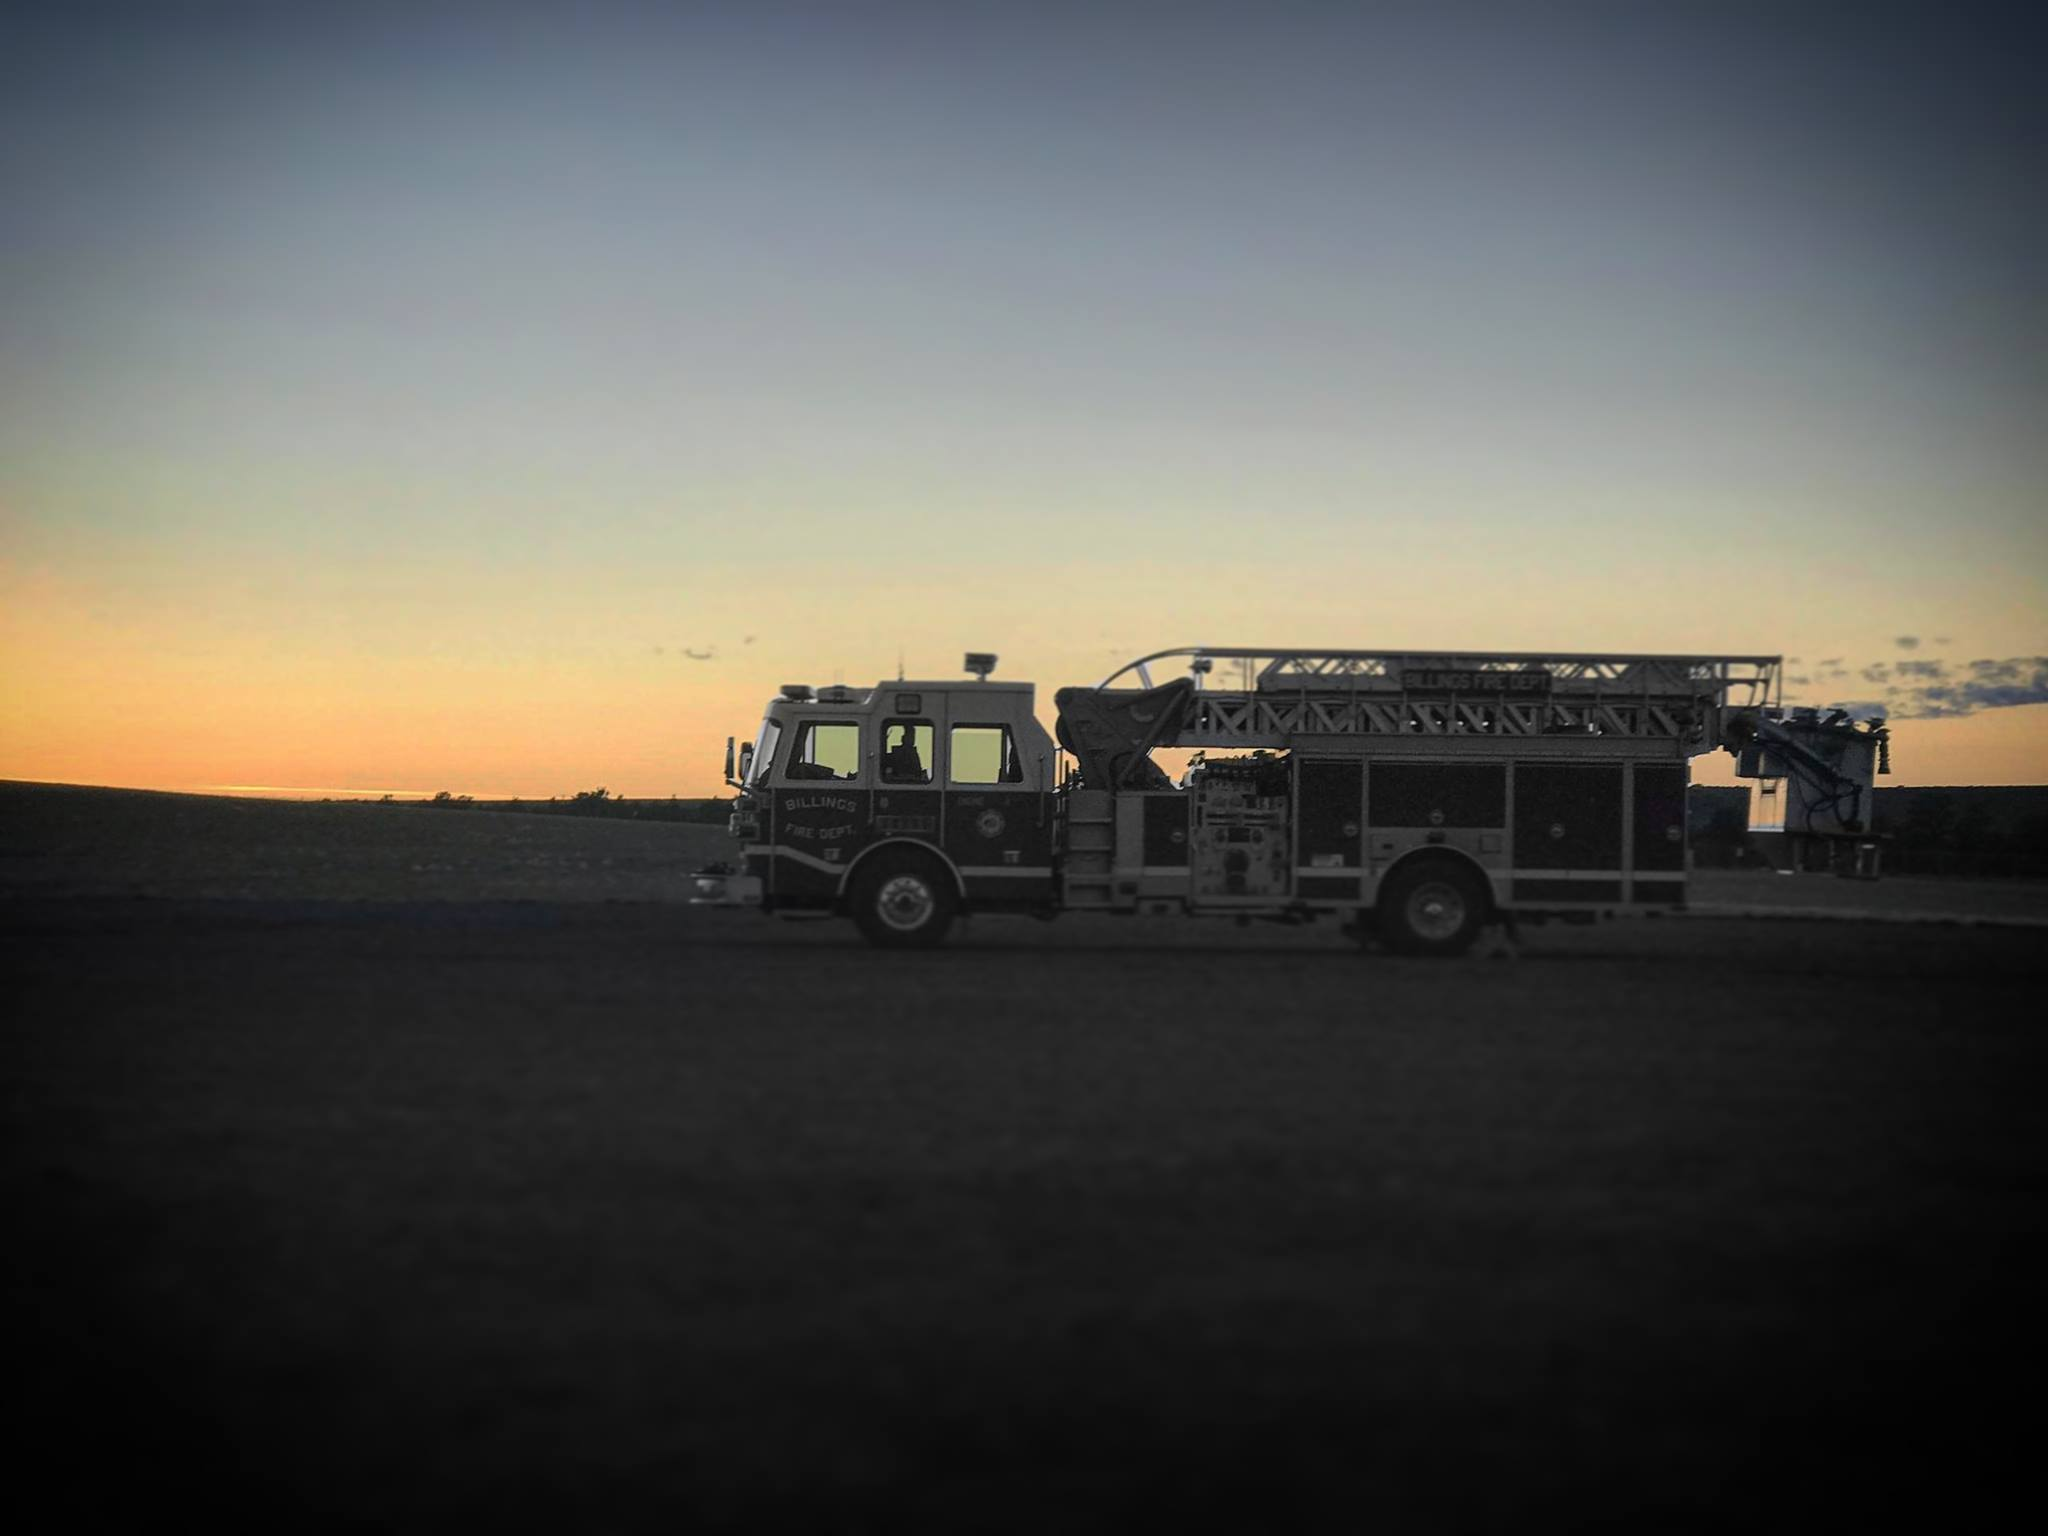 Engine 4 In the Sunset